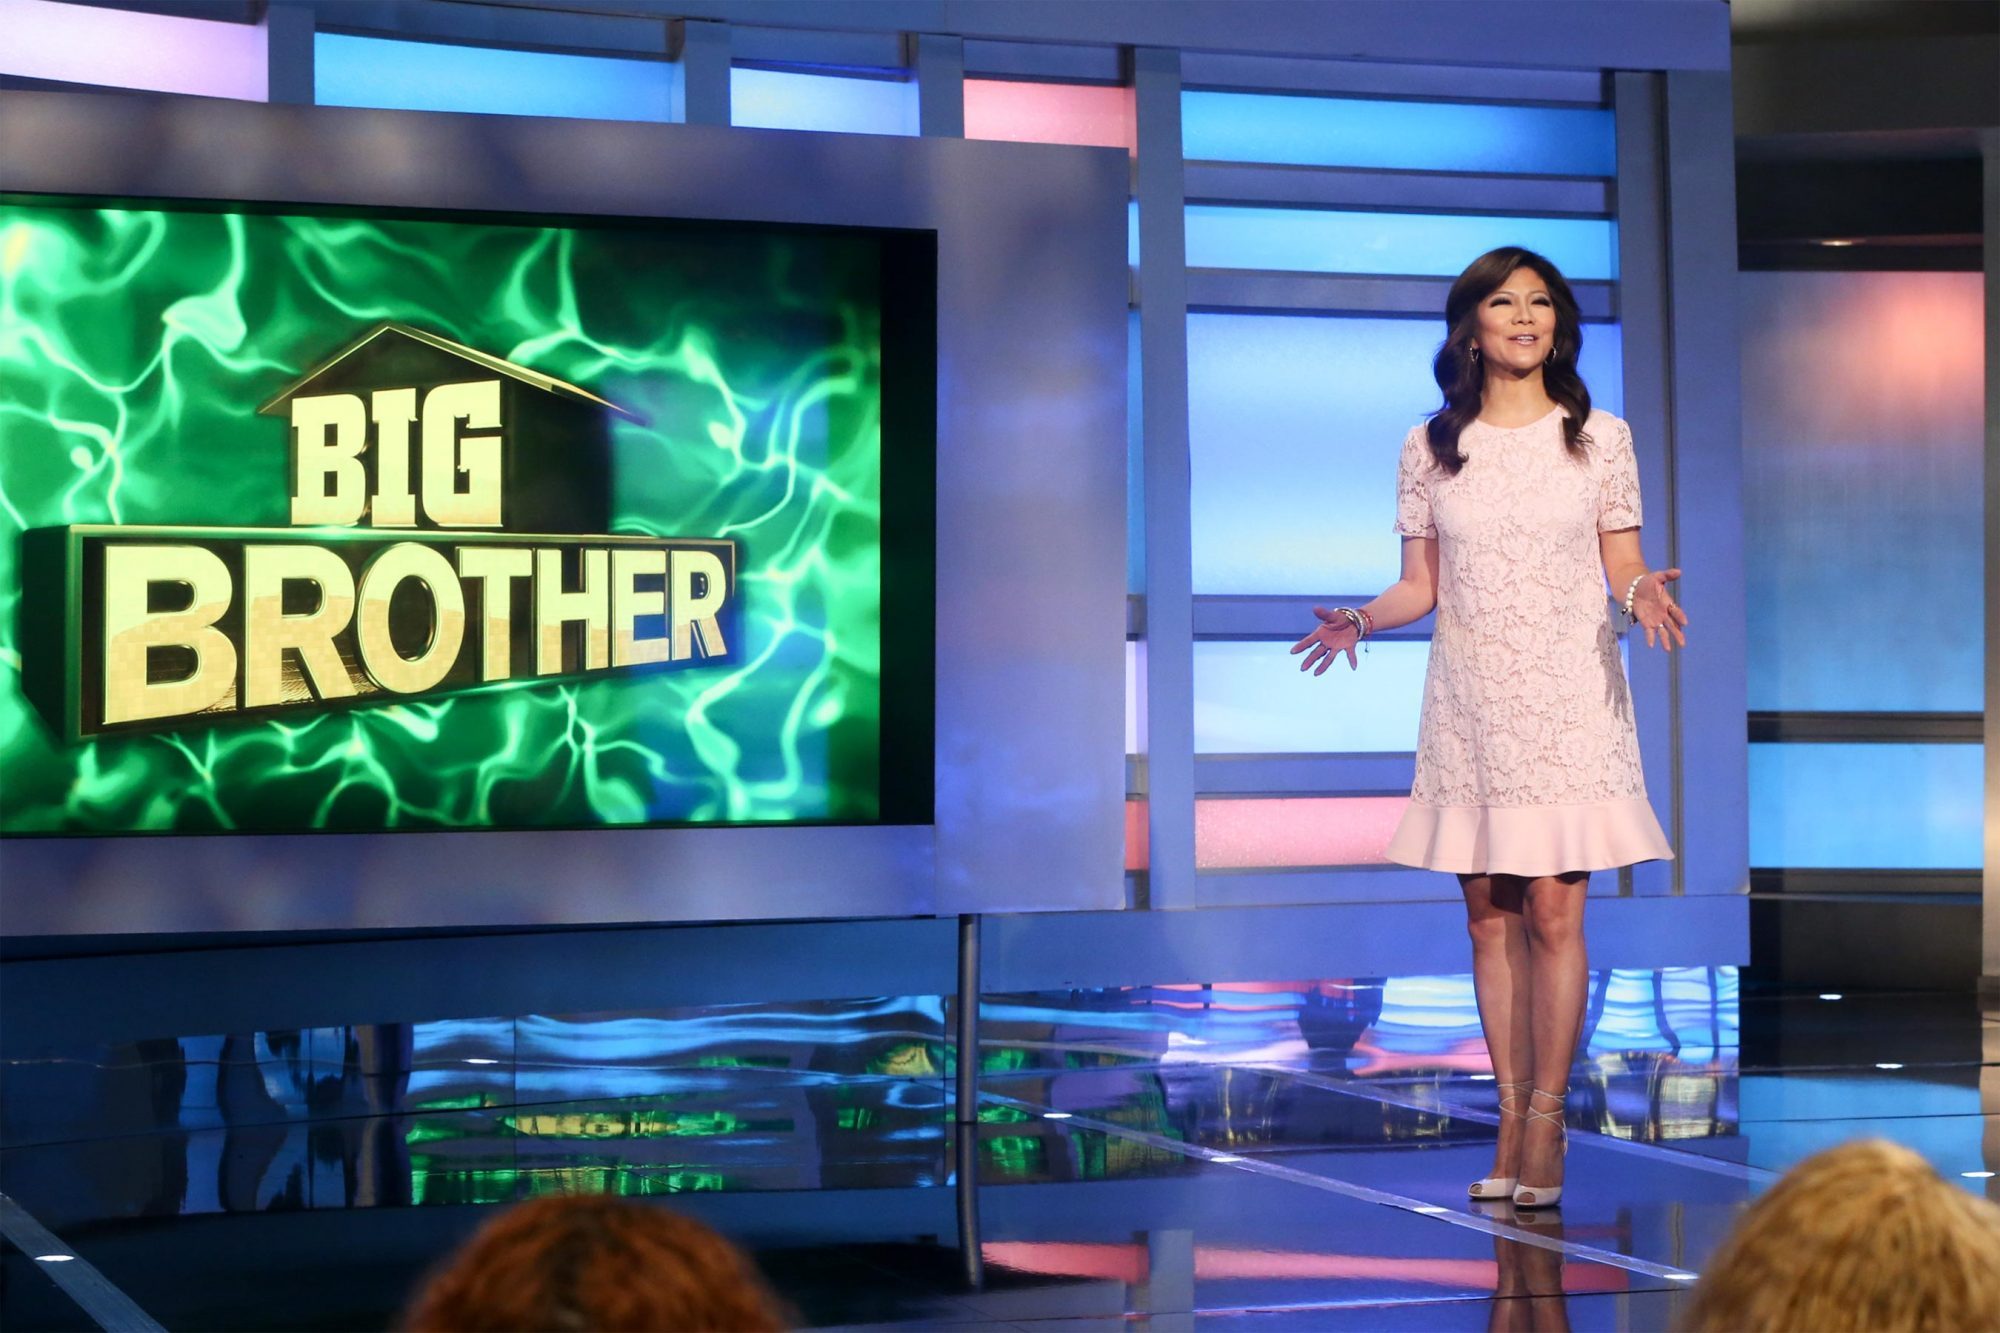 Host Julie Chen Moonves on BIG BROTHERÕs two-night premiere event airing Tuesday, June 25 and Wednesday, June 26 (8:00 Ð 9:00 PM, ET/PT), on the CBS Television Network. Following the two-night premiere, BIG BROTHER will be broadcast Sunday, June 30 (8:00-9:00 PM, ET/PT) and Tuesday, July 2 (8:00-9:00 PM, ET/PT). The first live eviction airs Wednesday, July 3. As of Wednesday, July 10, the show moves to its regular schedule of Wednesdays (9:00-10:00 PM, ET/PT), Thursdays, featuring the live evictions (9:00-10:00 PM, LIVE ET/Delayed PT) and Sundays (8:00-9:00 PM, ET/PT). Reserved Photo: Monty Brinton/CBS ©2018 CBS Broadcasting, Inc. All Rights Reserved